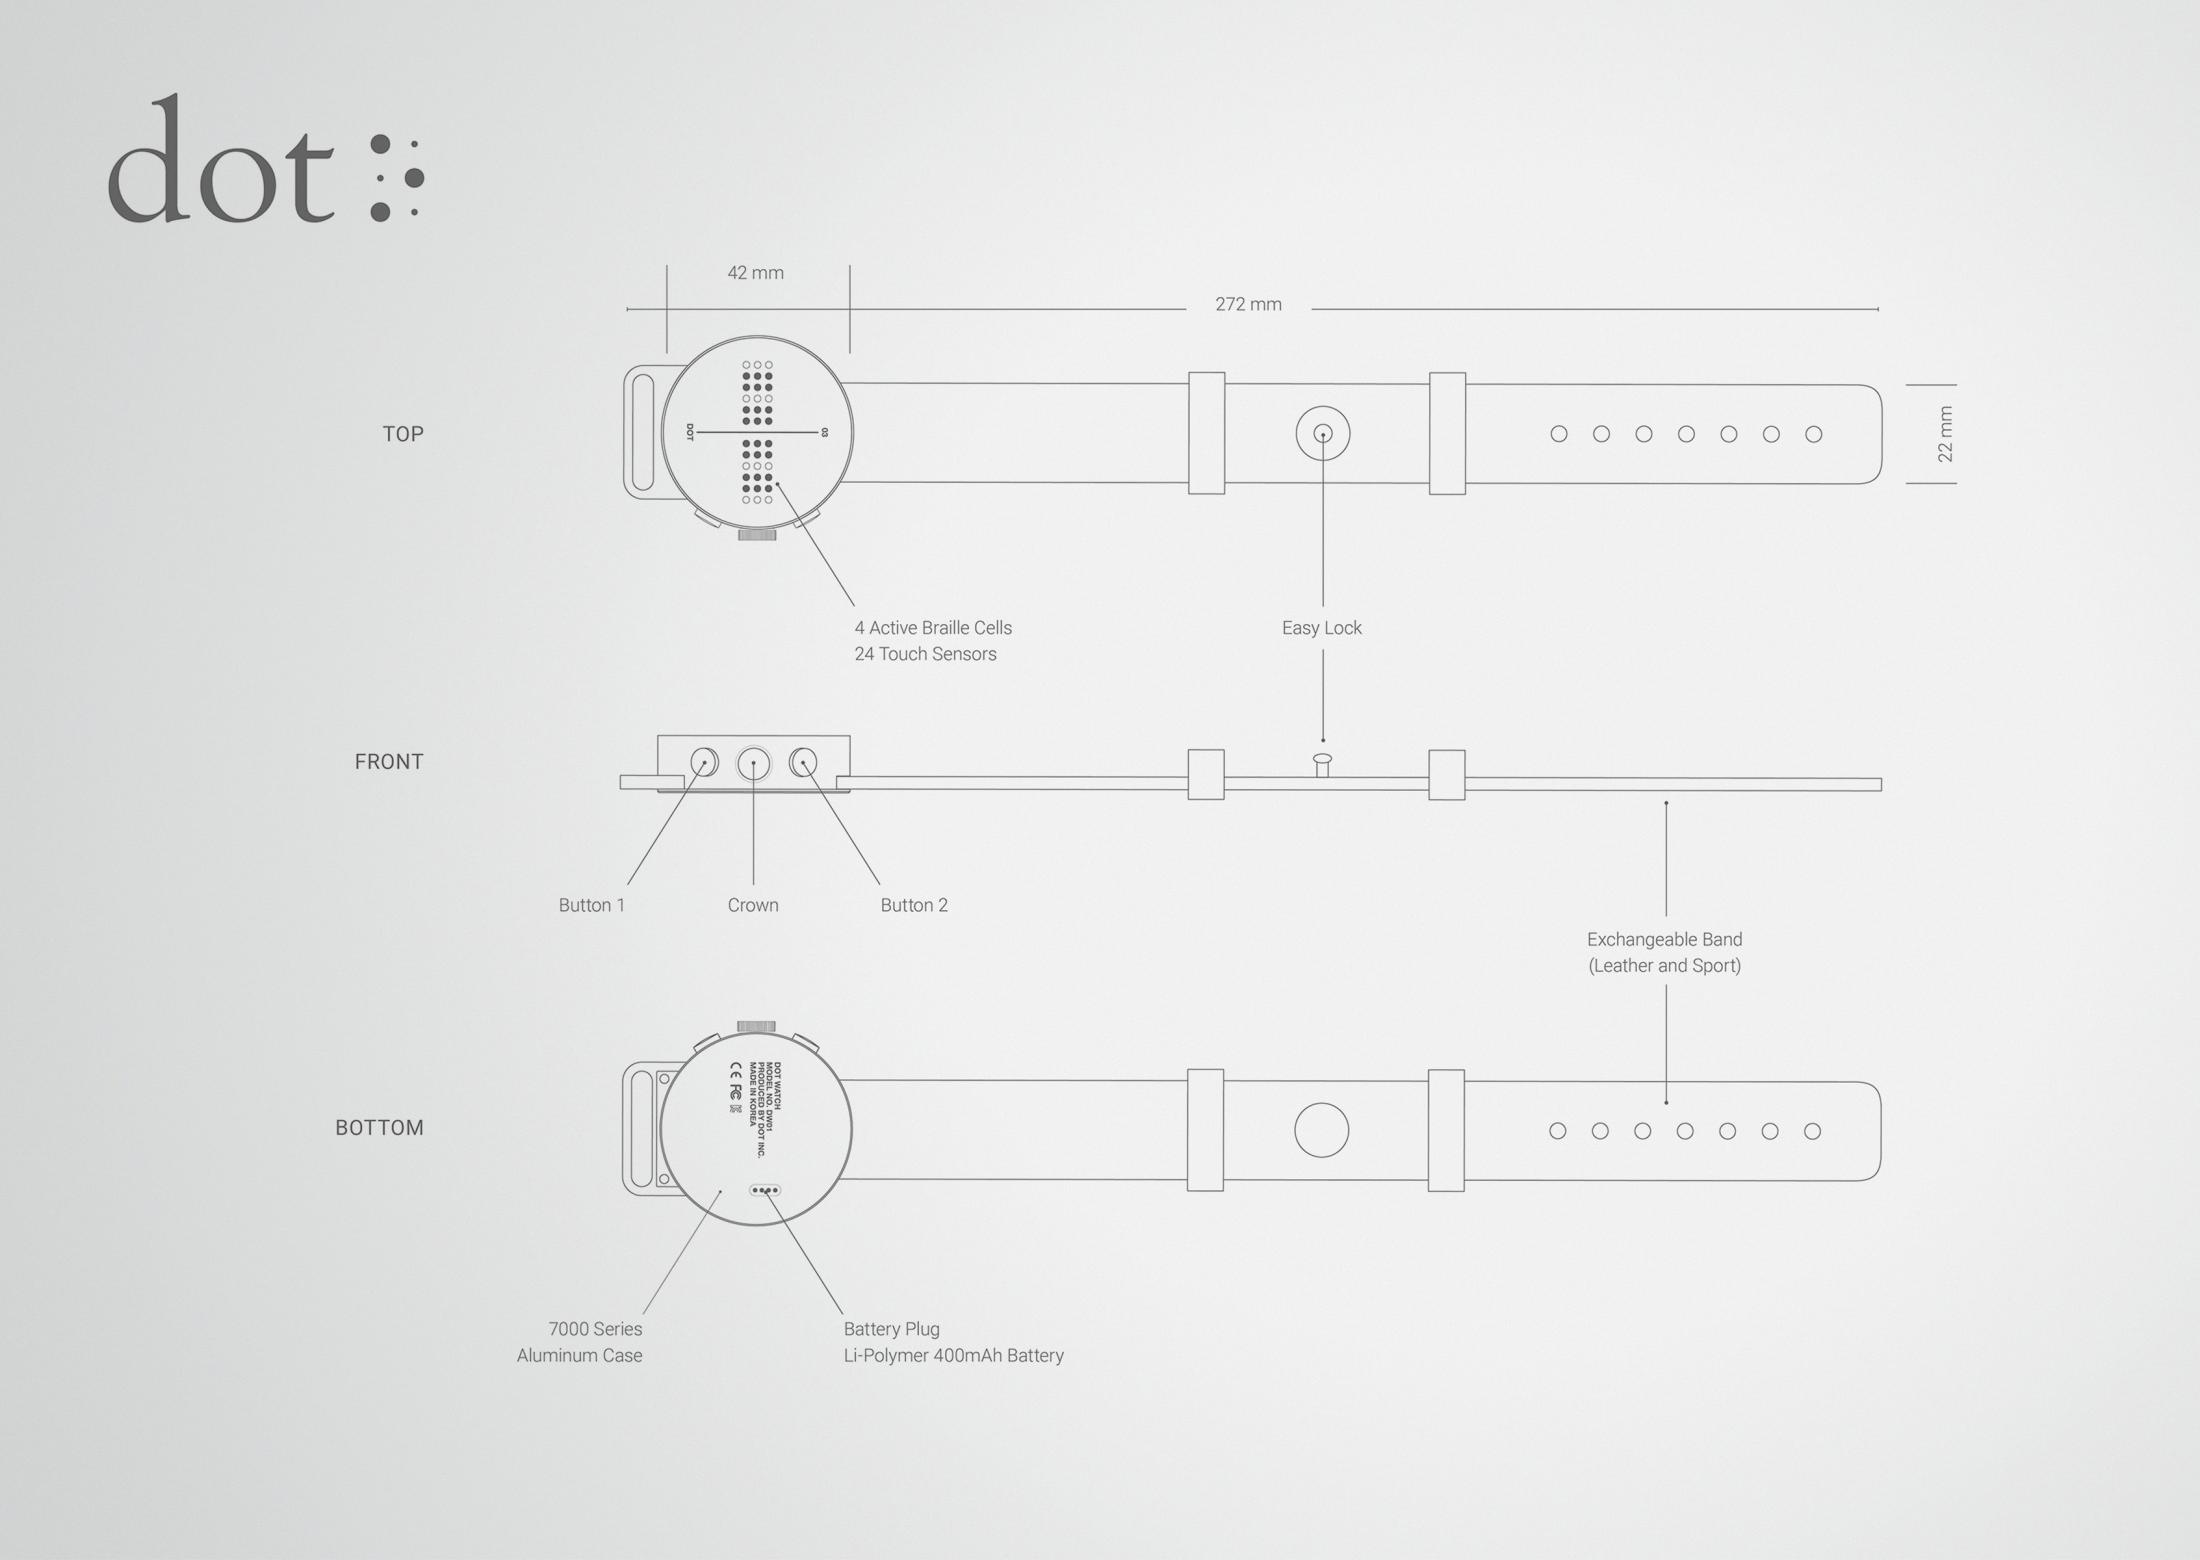 Thumbnail for DOT. The first Braille Smartwatch.